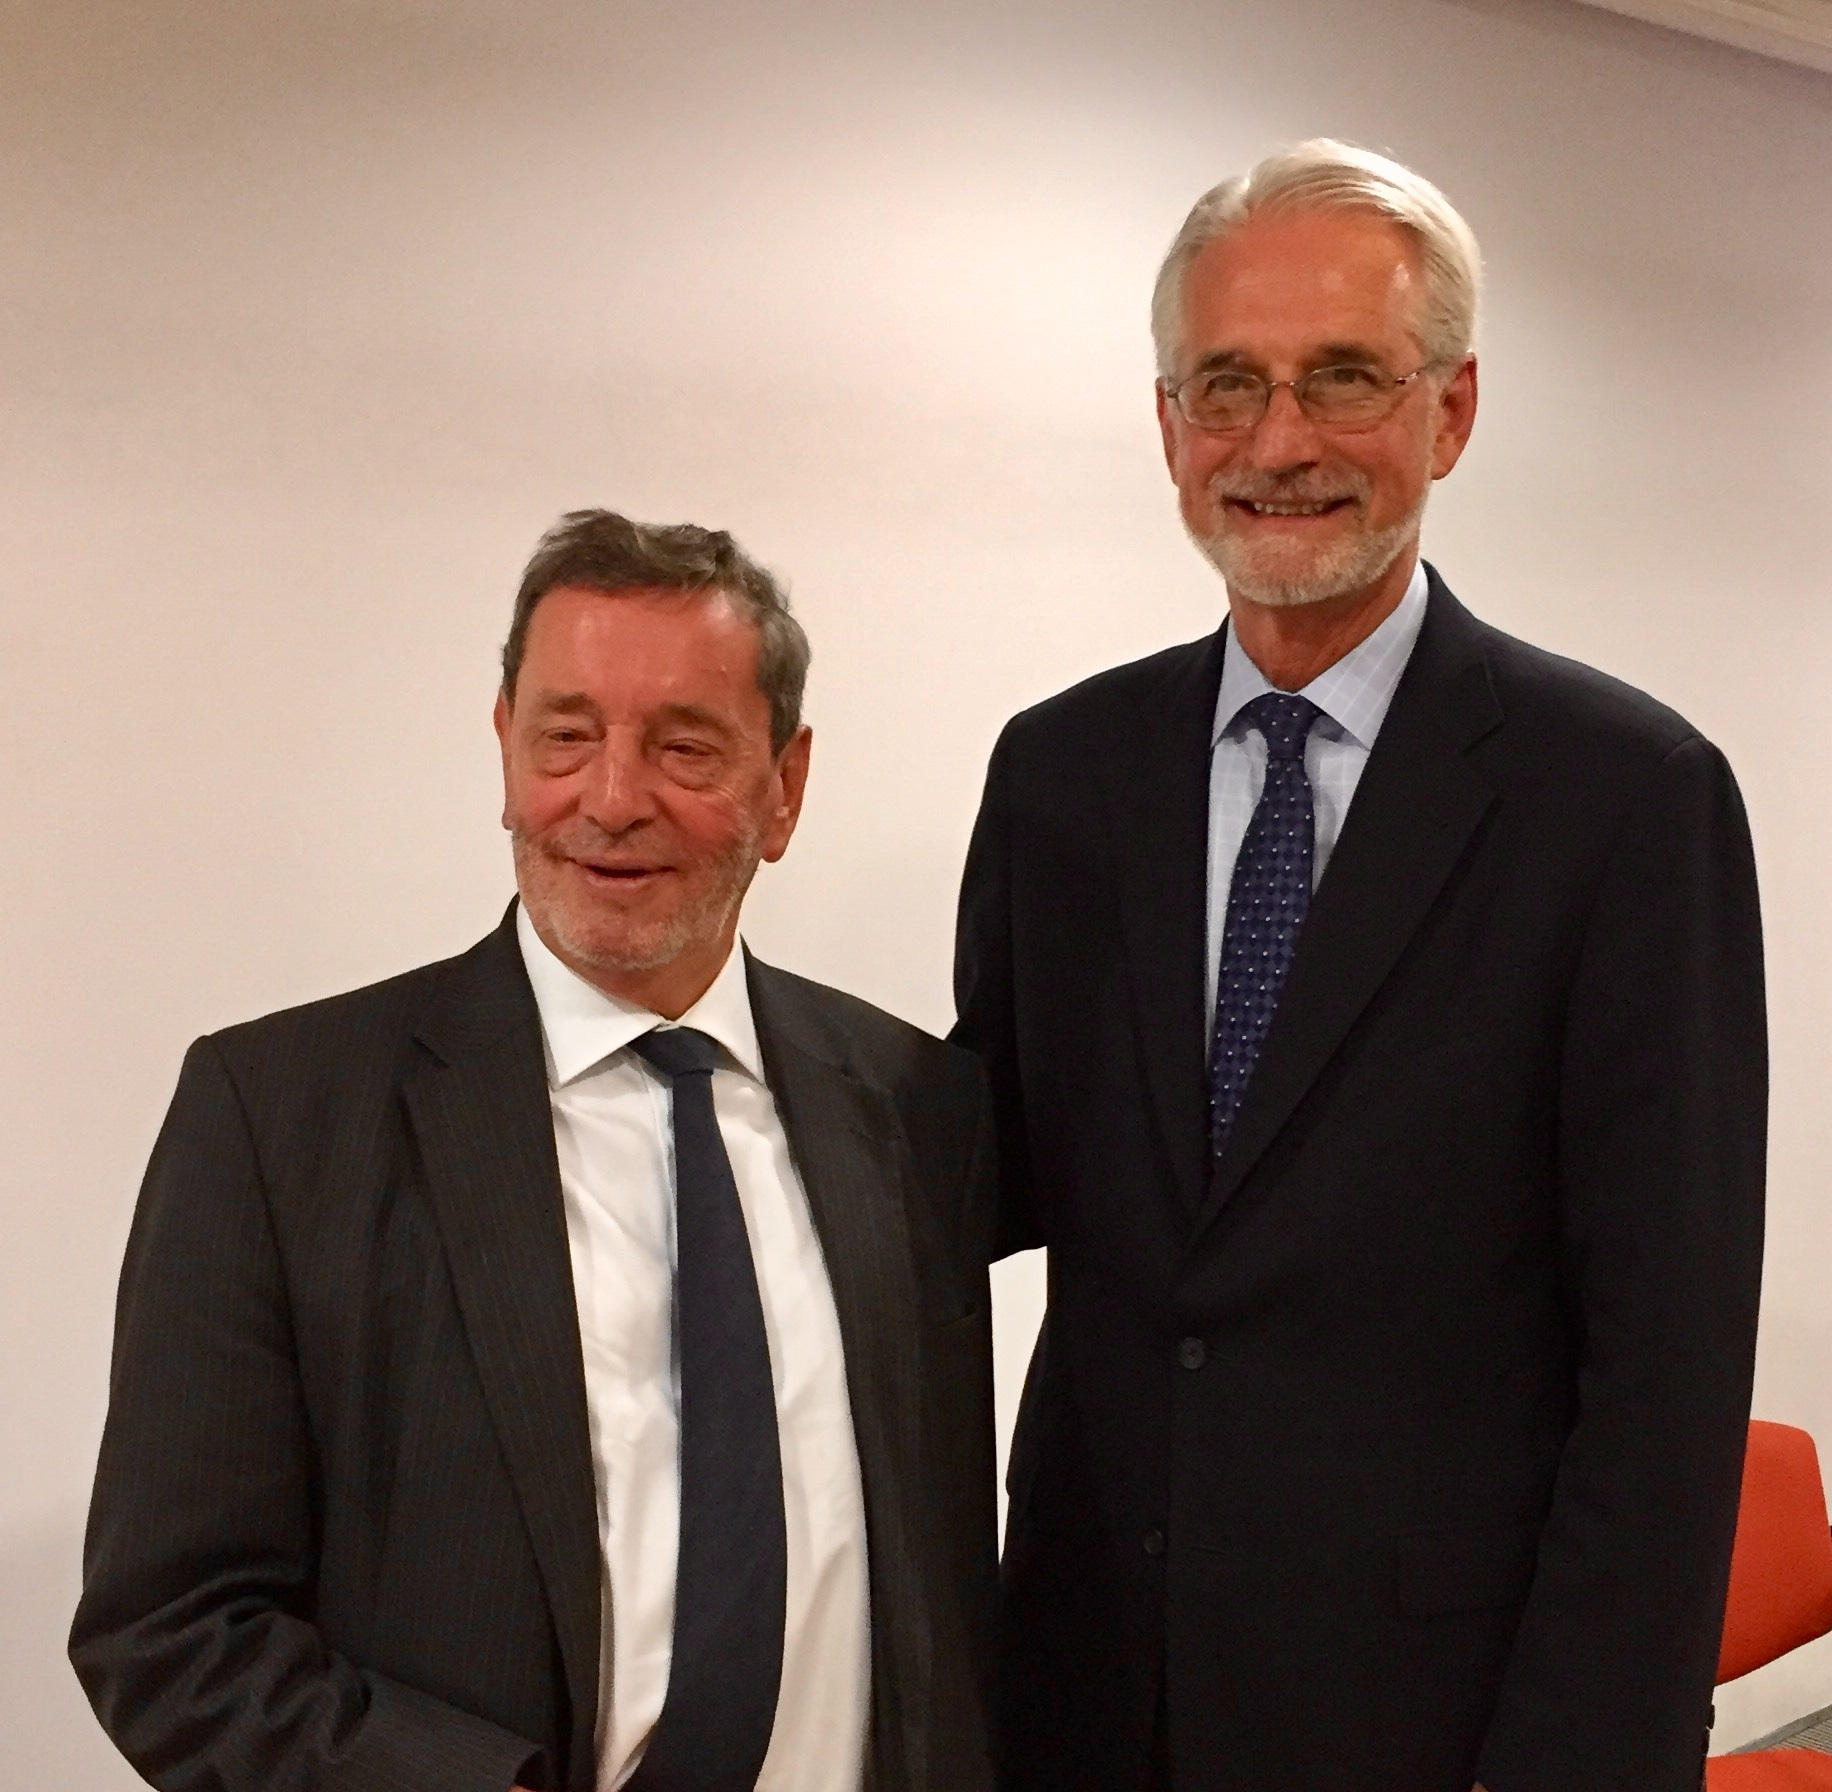 Lord David Blunkett, Chair of Sheffield City Partnership Board and Ted Howard, President of The Democracy Collaborative